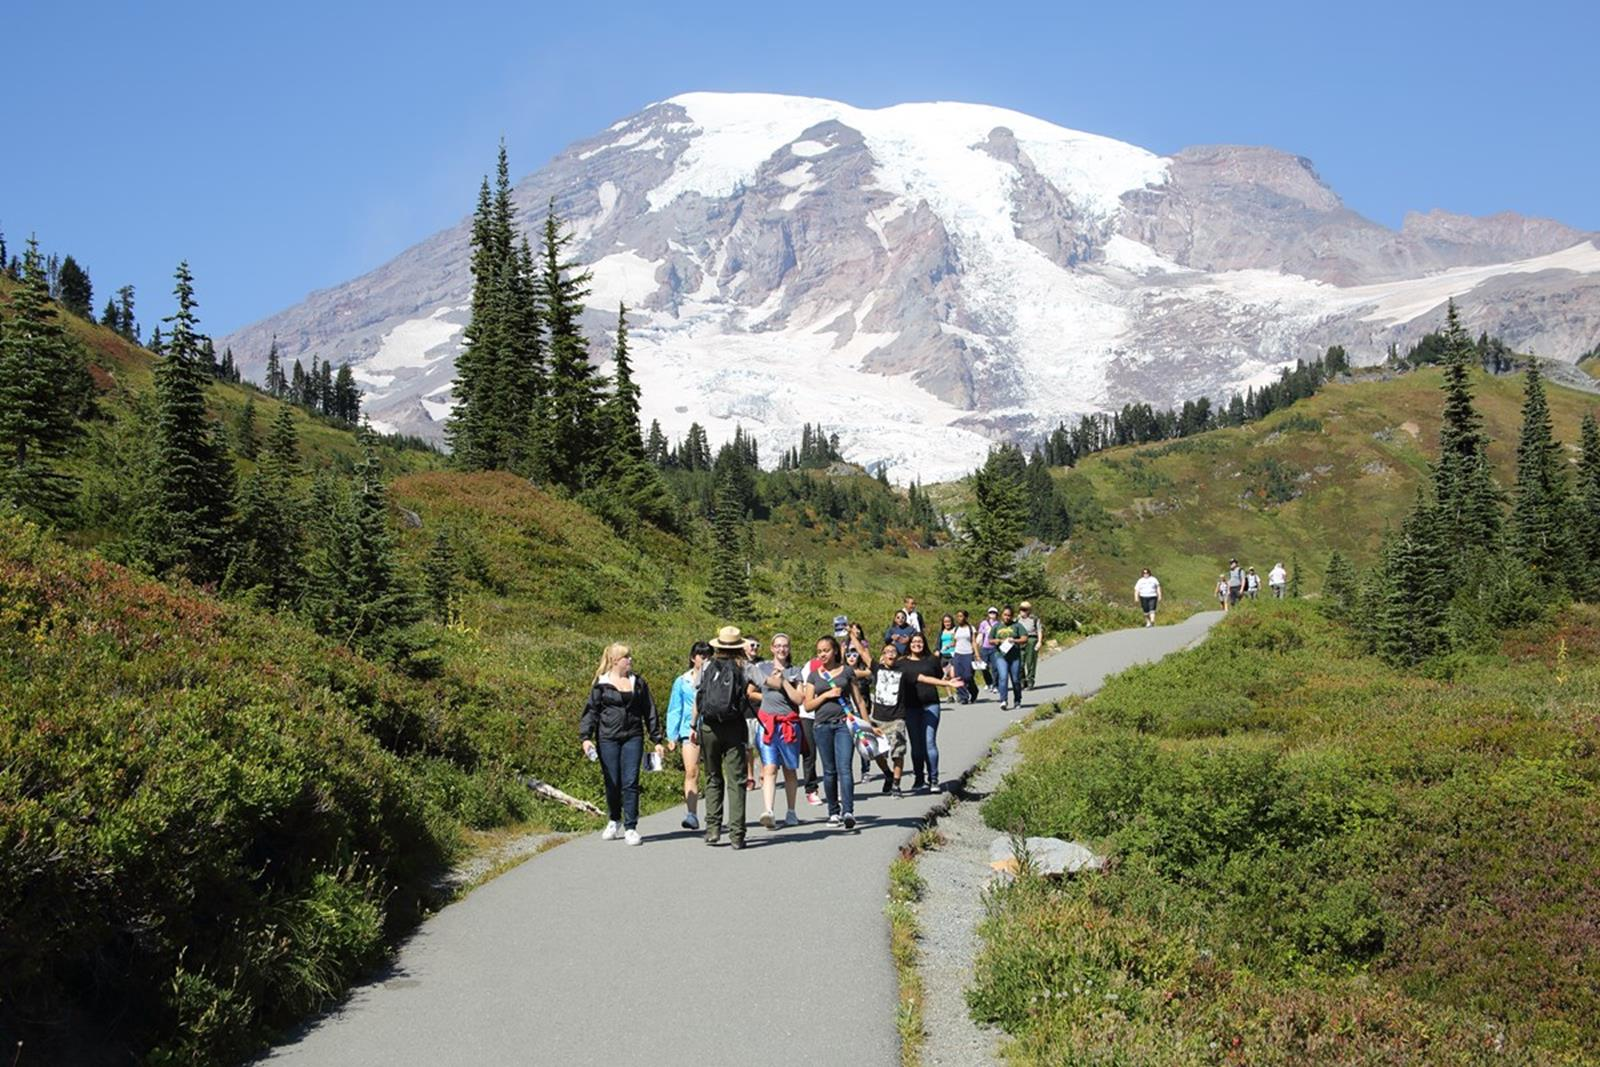 Aim for the Skies on Your Seattle Student STEM Tour